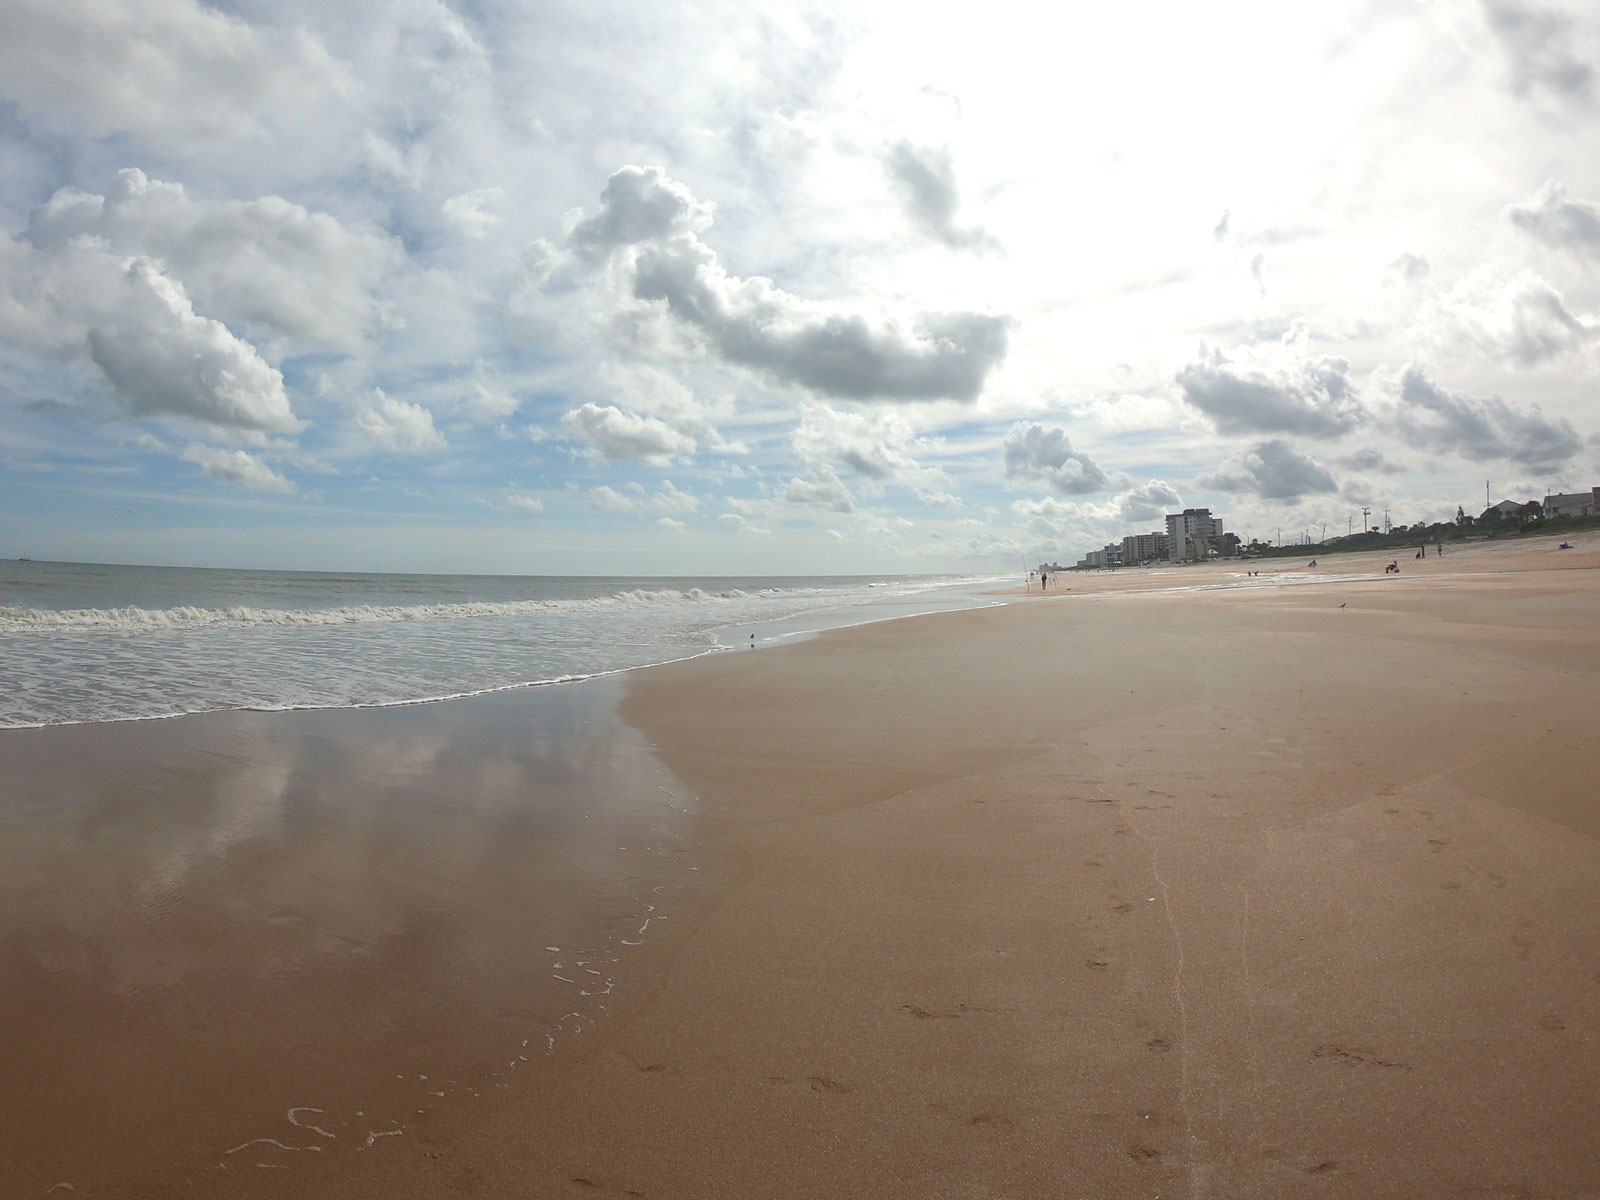 Beach on scenic highway A1A byway florida